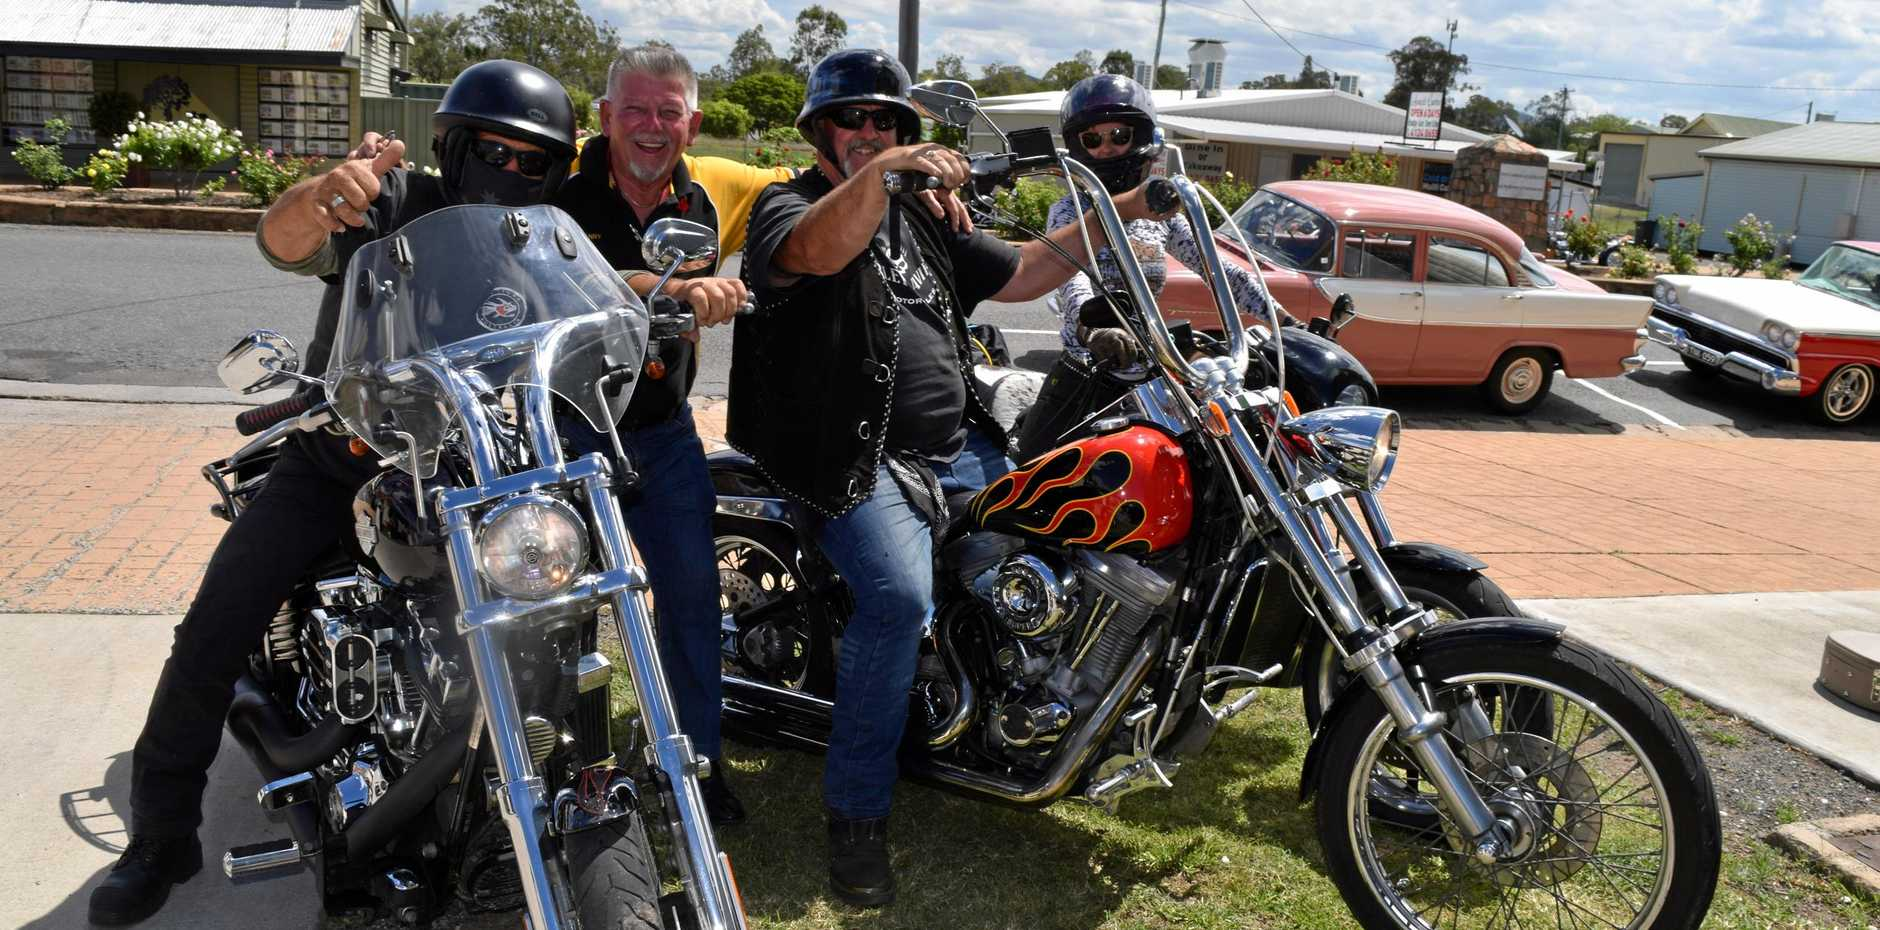 GREAT DAY OUT: Danny Nevins of the Grand Hotel at Biggenden welcomes some of his biker mates to town for the inaugural hot rod and custom car show.